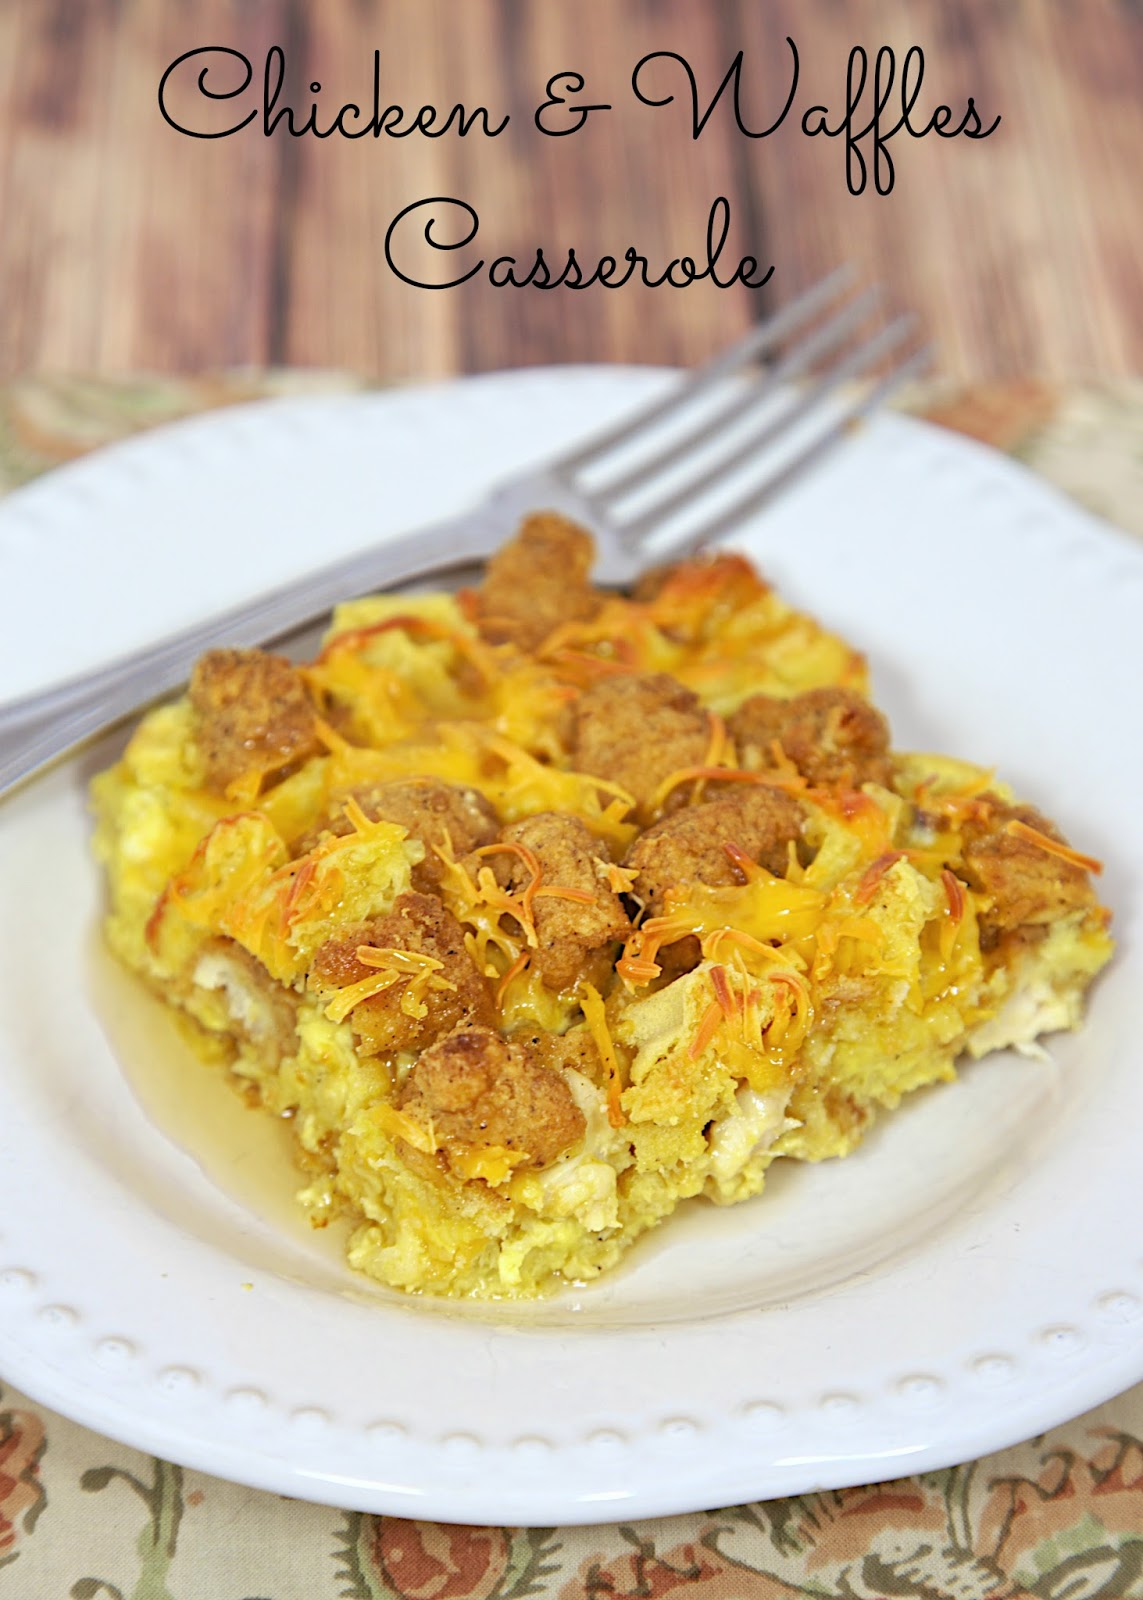 Chicken & Waffles Casserole Recipe - chicken and waffles baked in a maple egg custard - sweet & savory in every bite. Can make the night before and refrigerate until ready to bake.